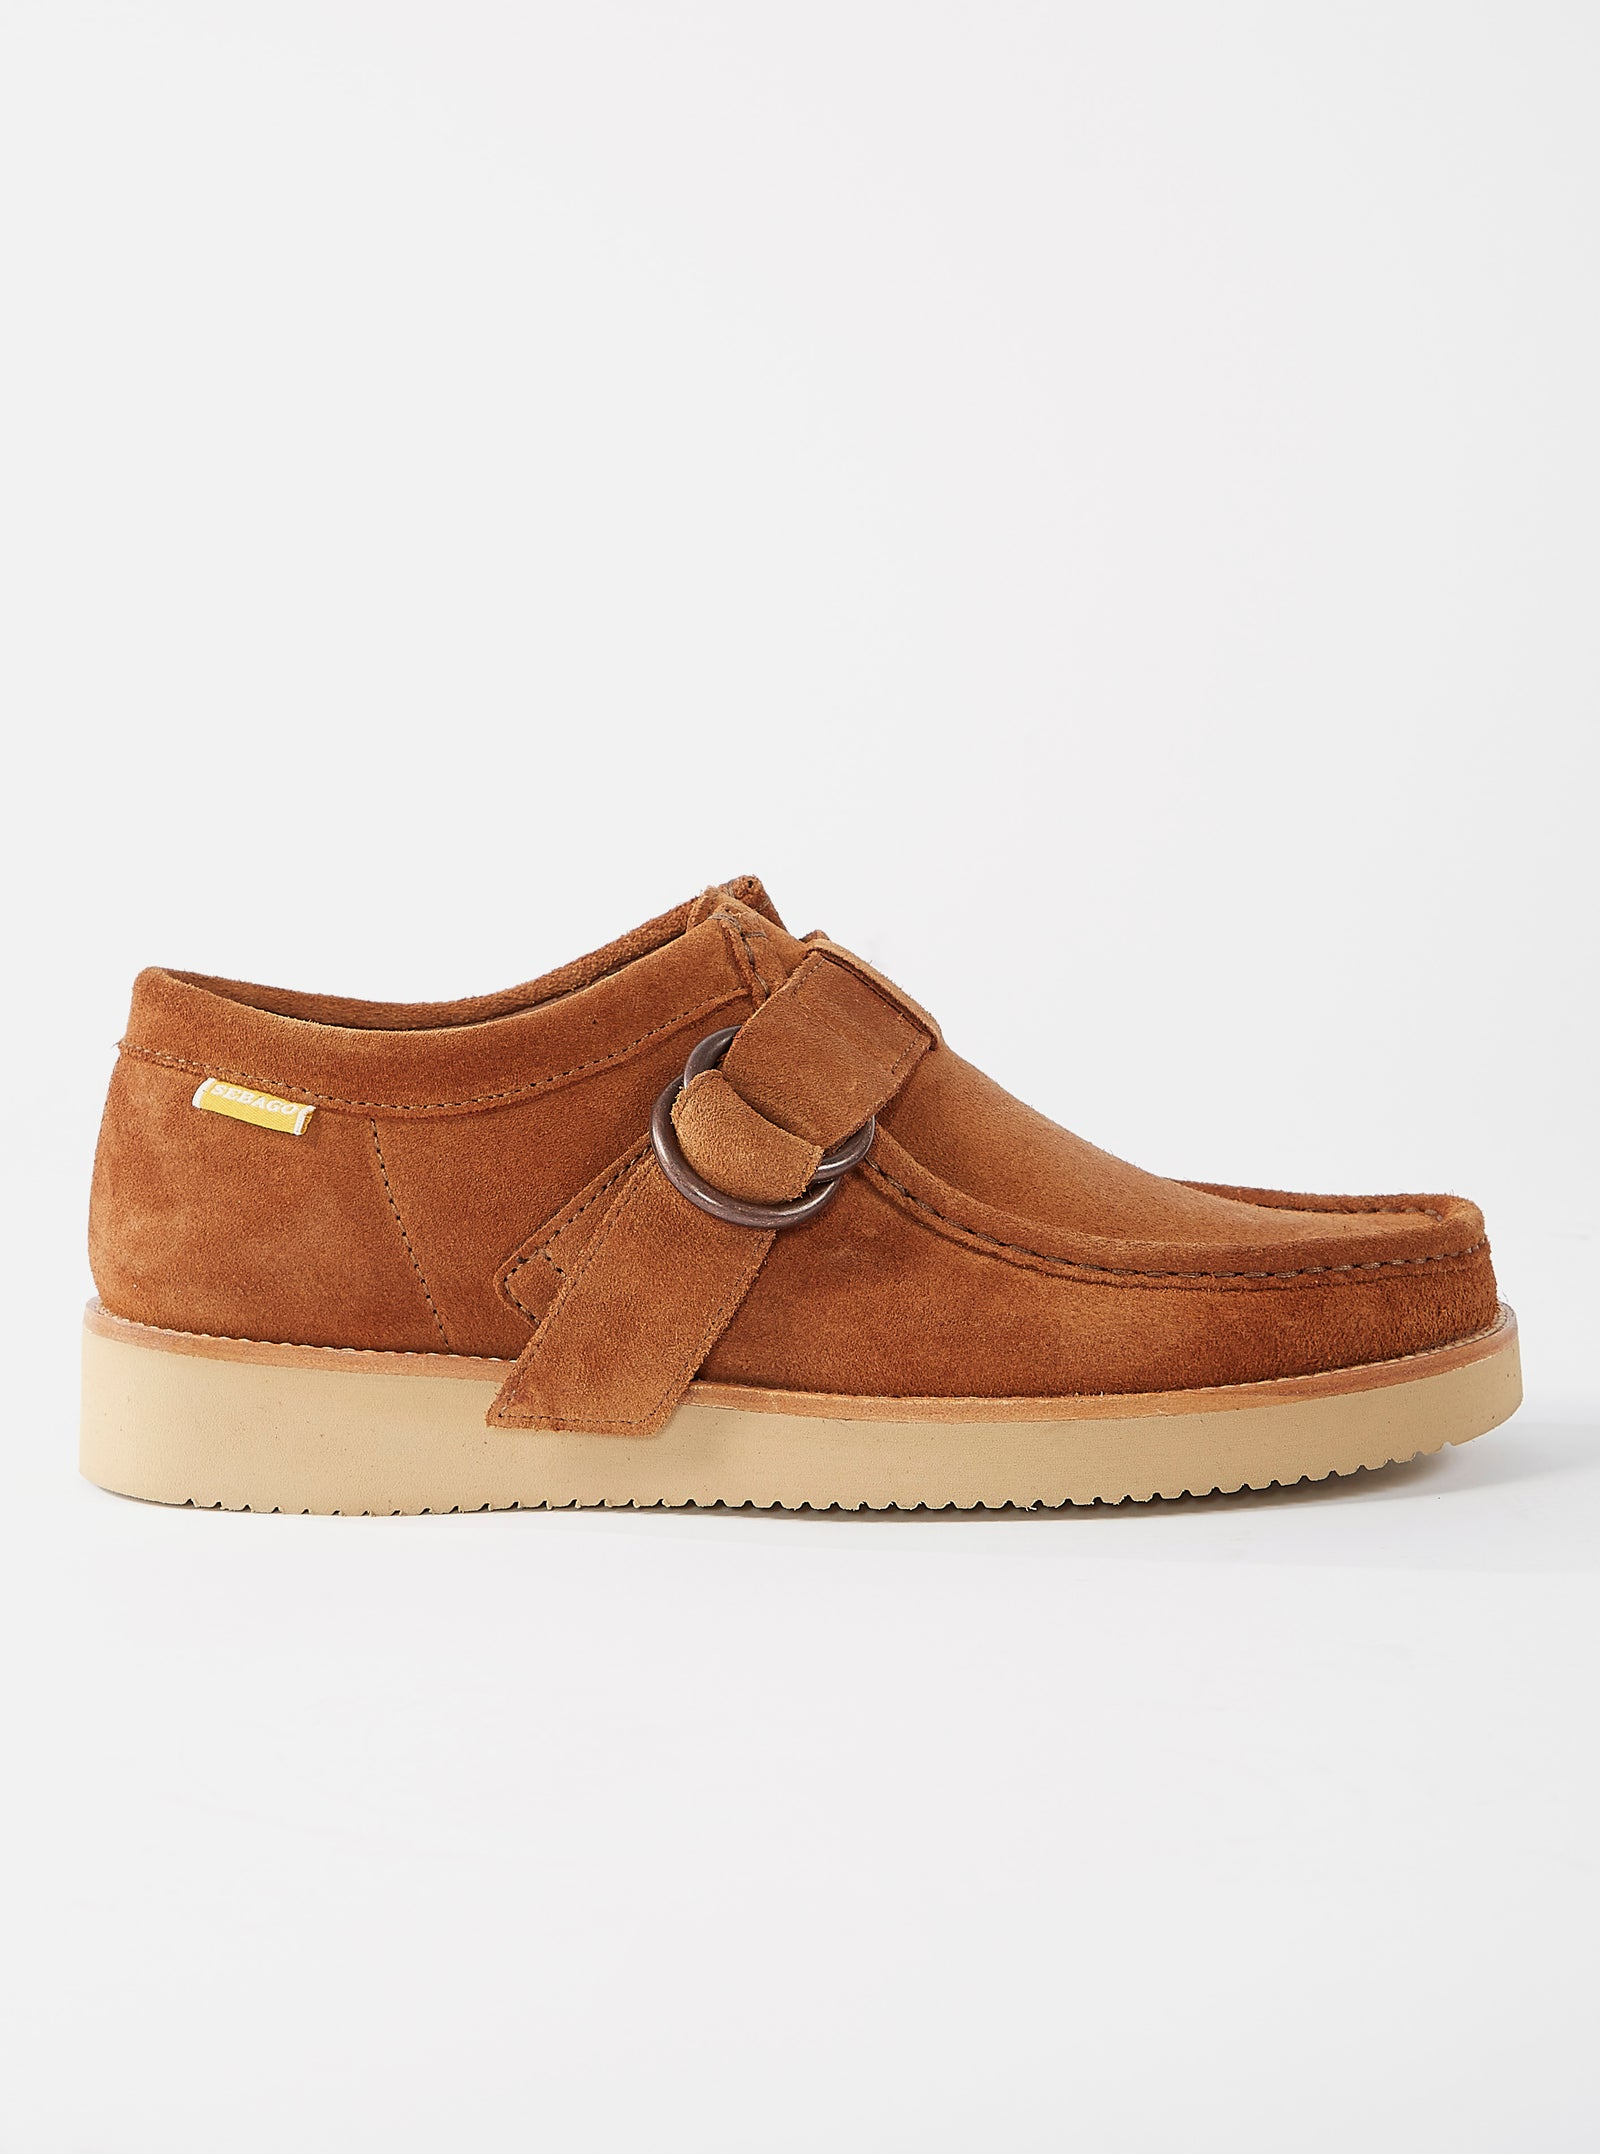 Universal Works x Sebago Buckle Koala in Tan Suede